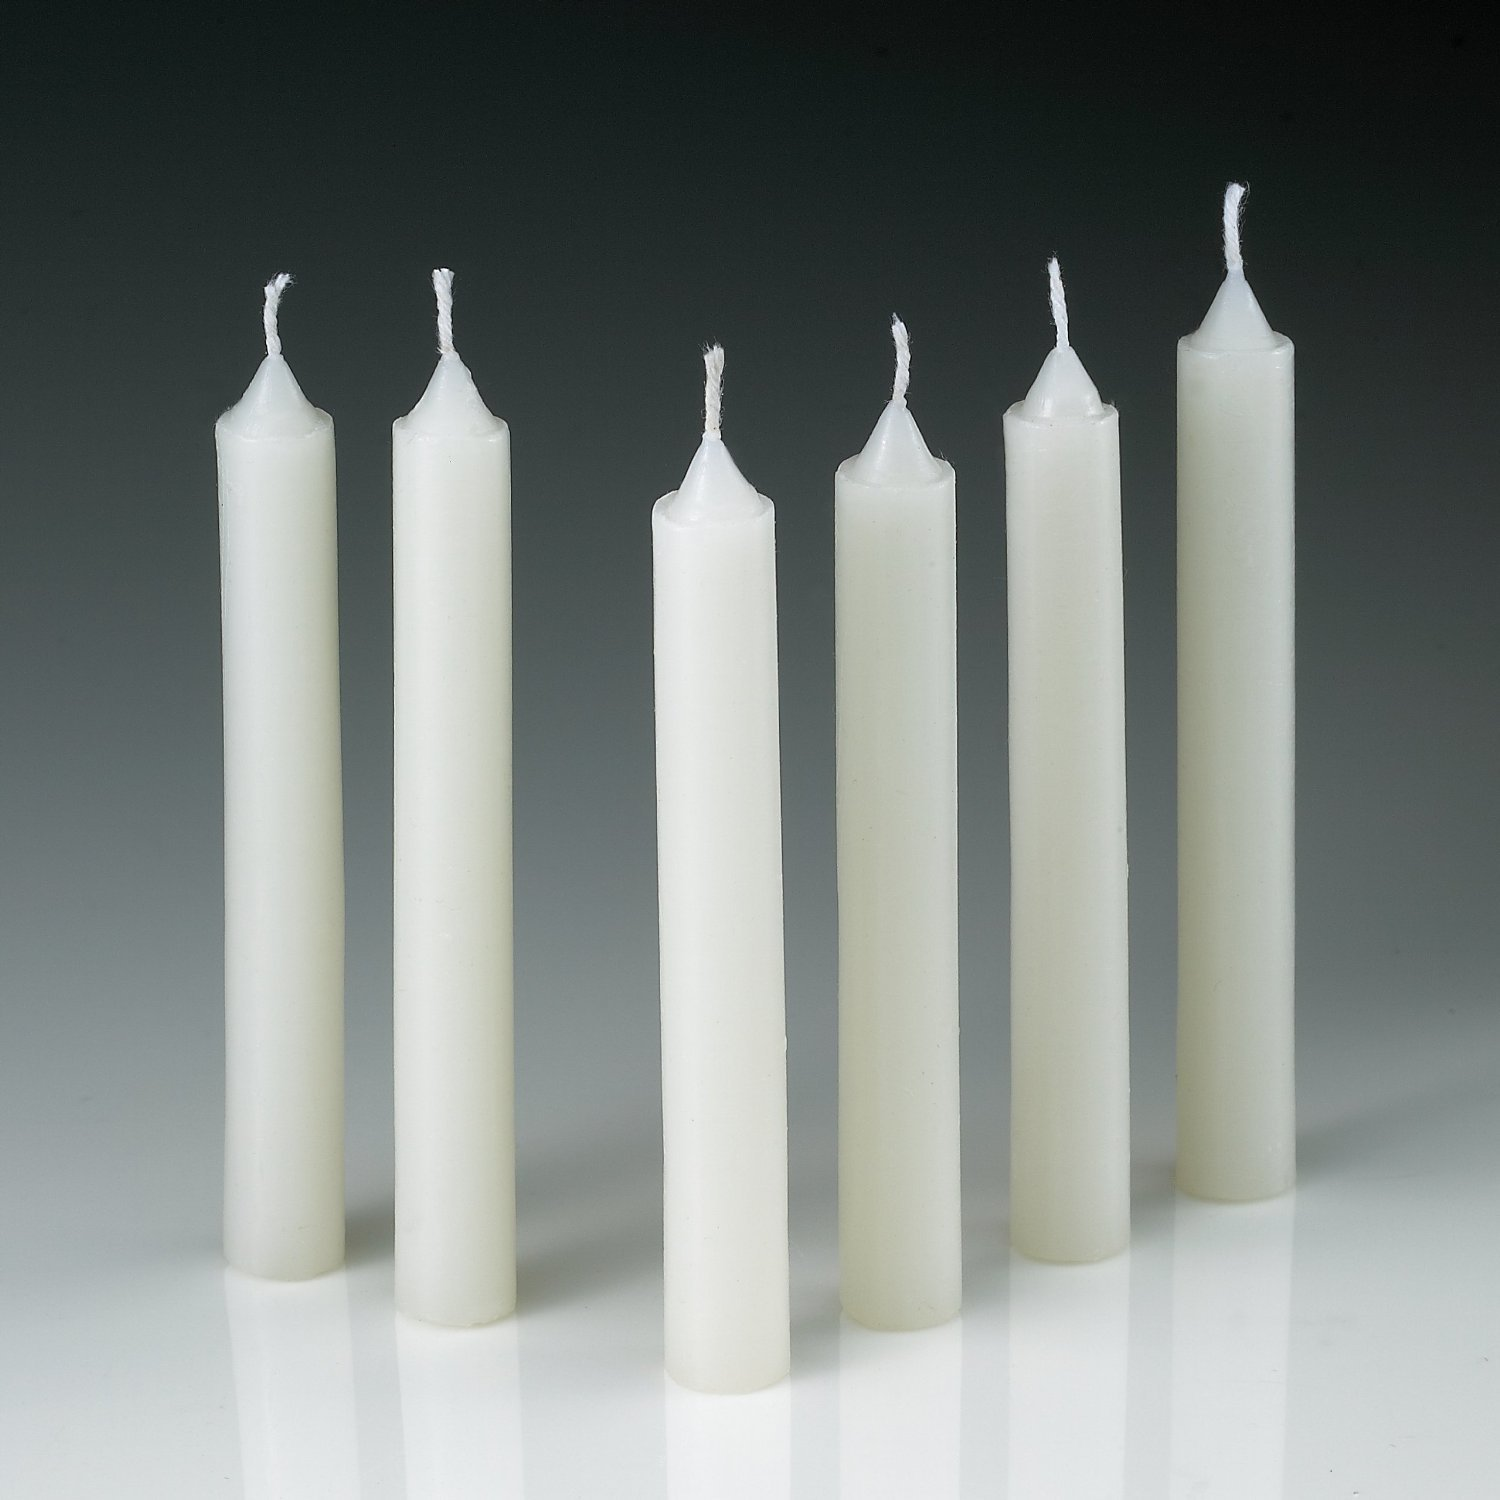 Amazon.com: White Taper Candles - Set of 60 Dripless Candles - 4 ...